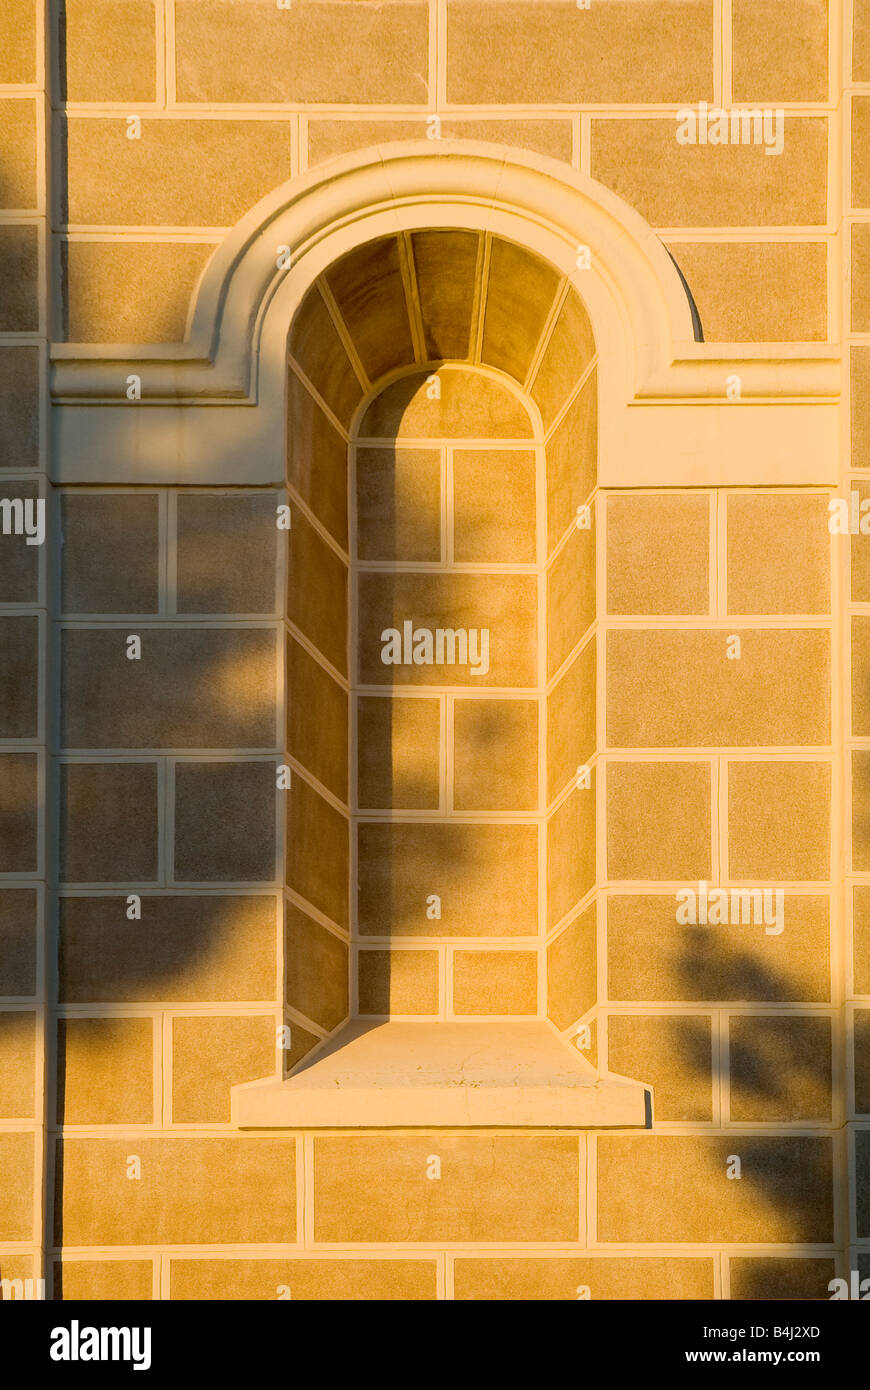 Arched Wall Stock Photos & Arched Wall Stock Images - Alamy